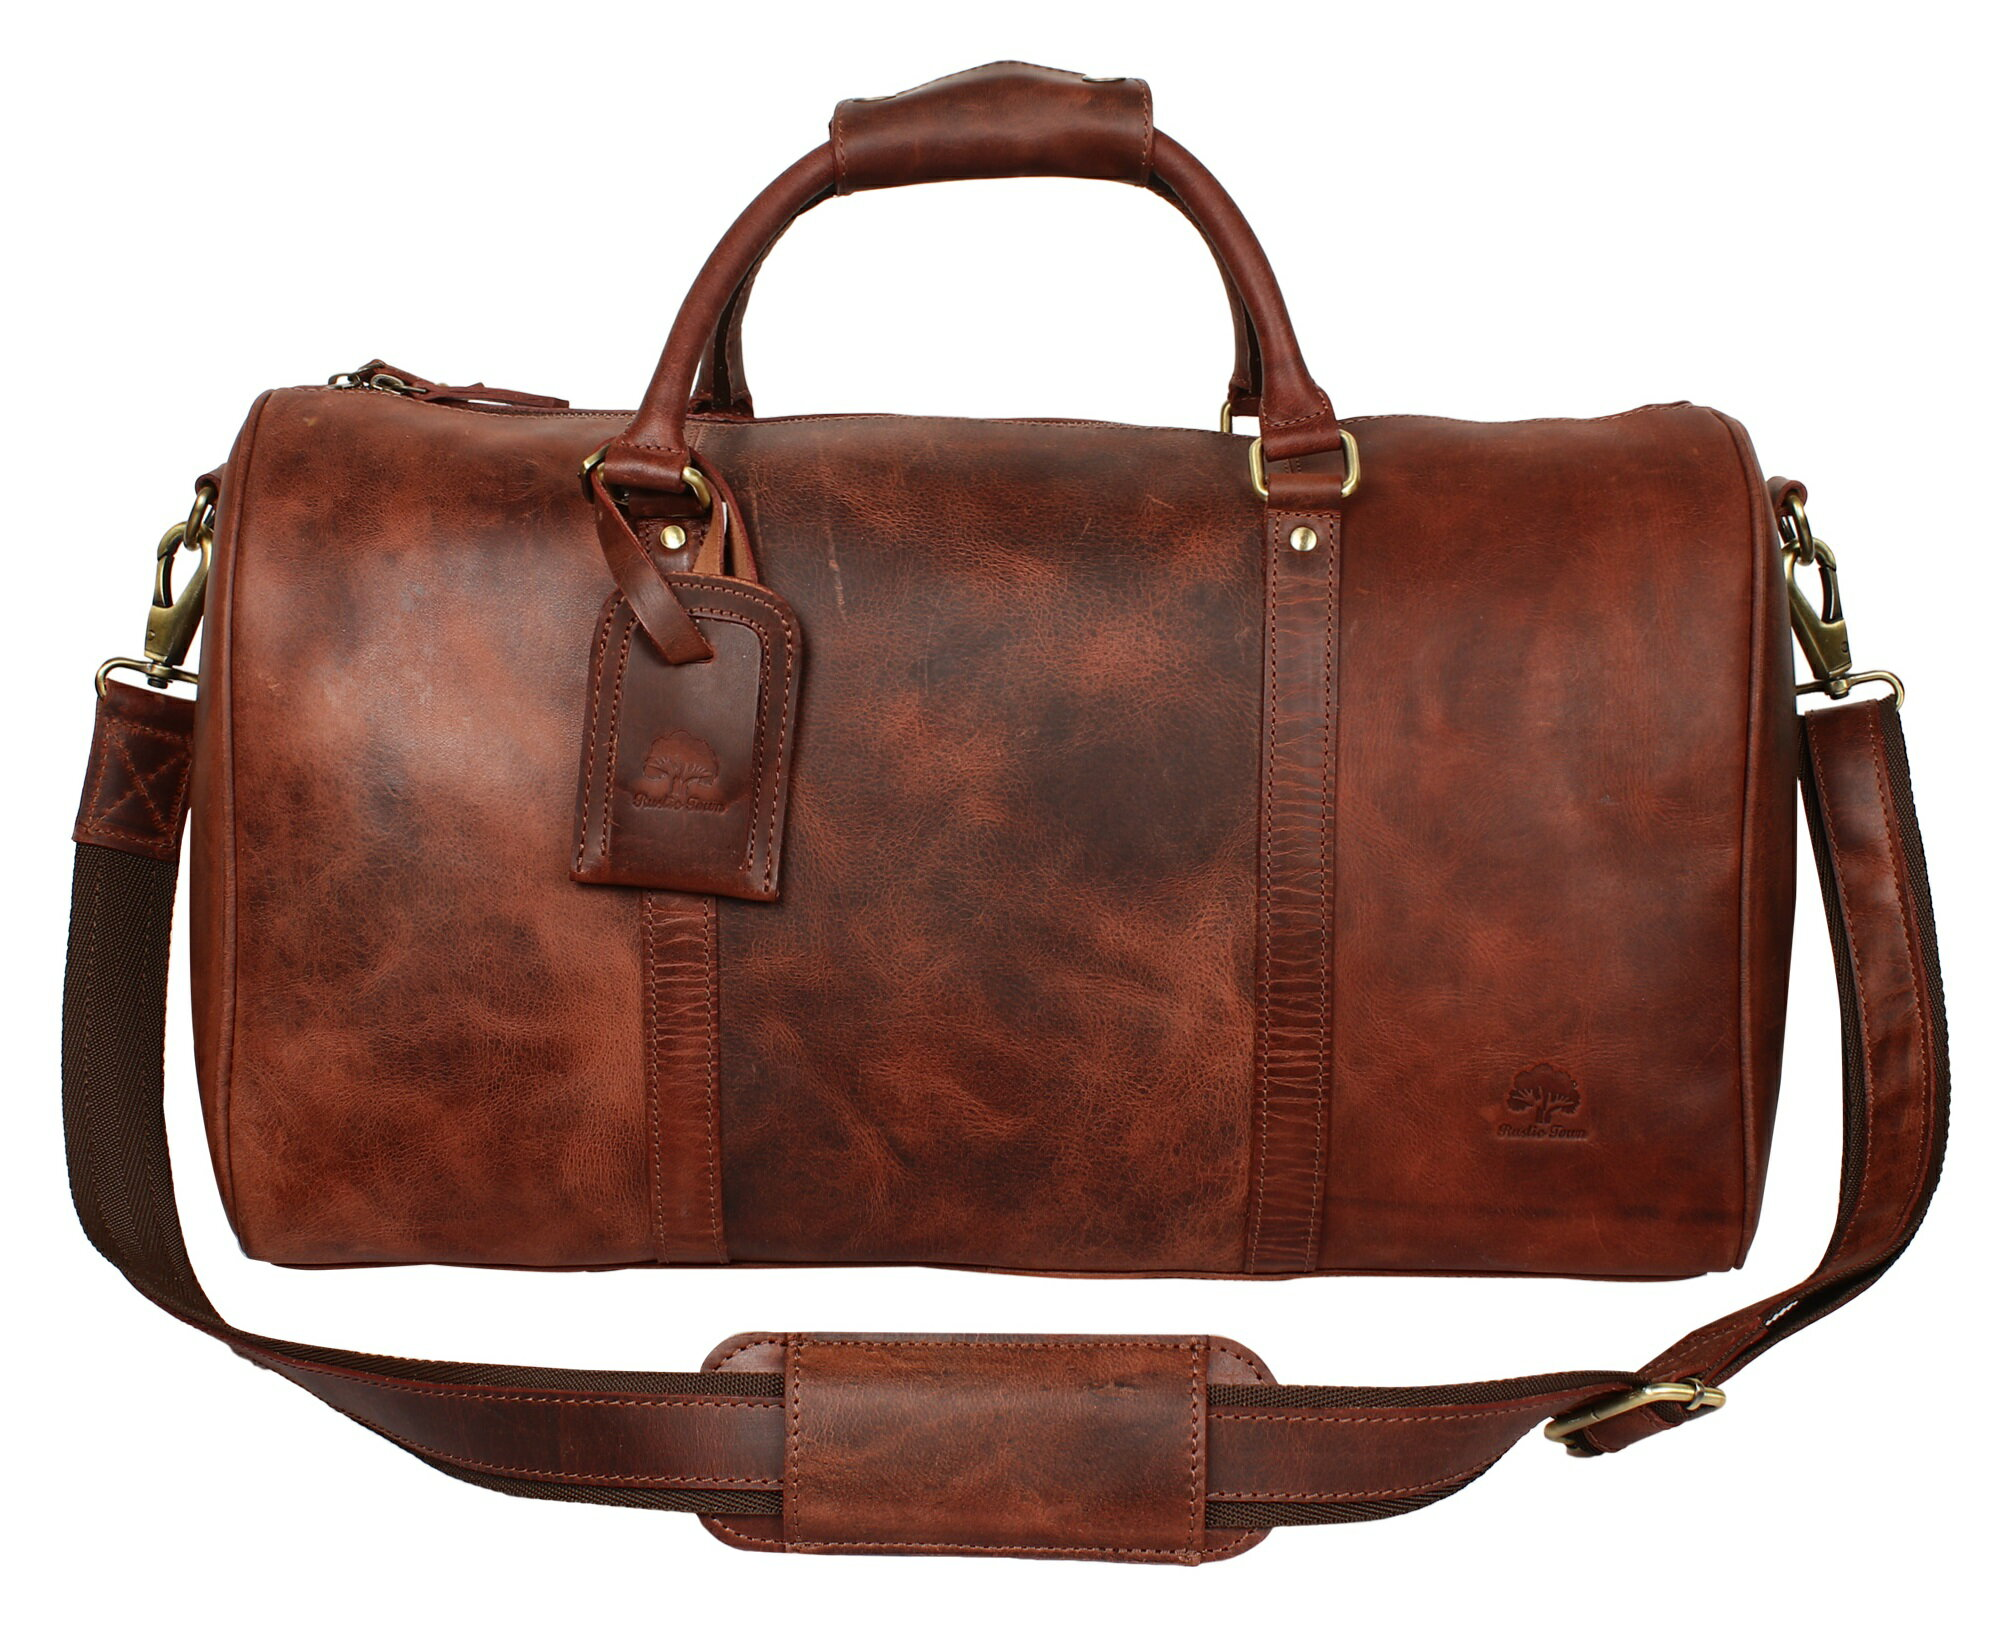 9b44cff57220 Leather Duffel Bags For Men - Airplane Underseat Carry On Luggage By  RusticTown 0